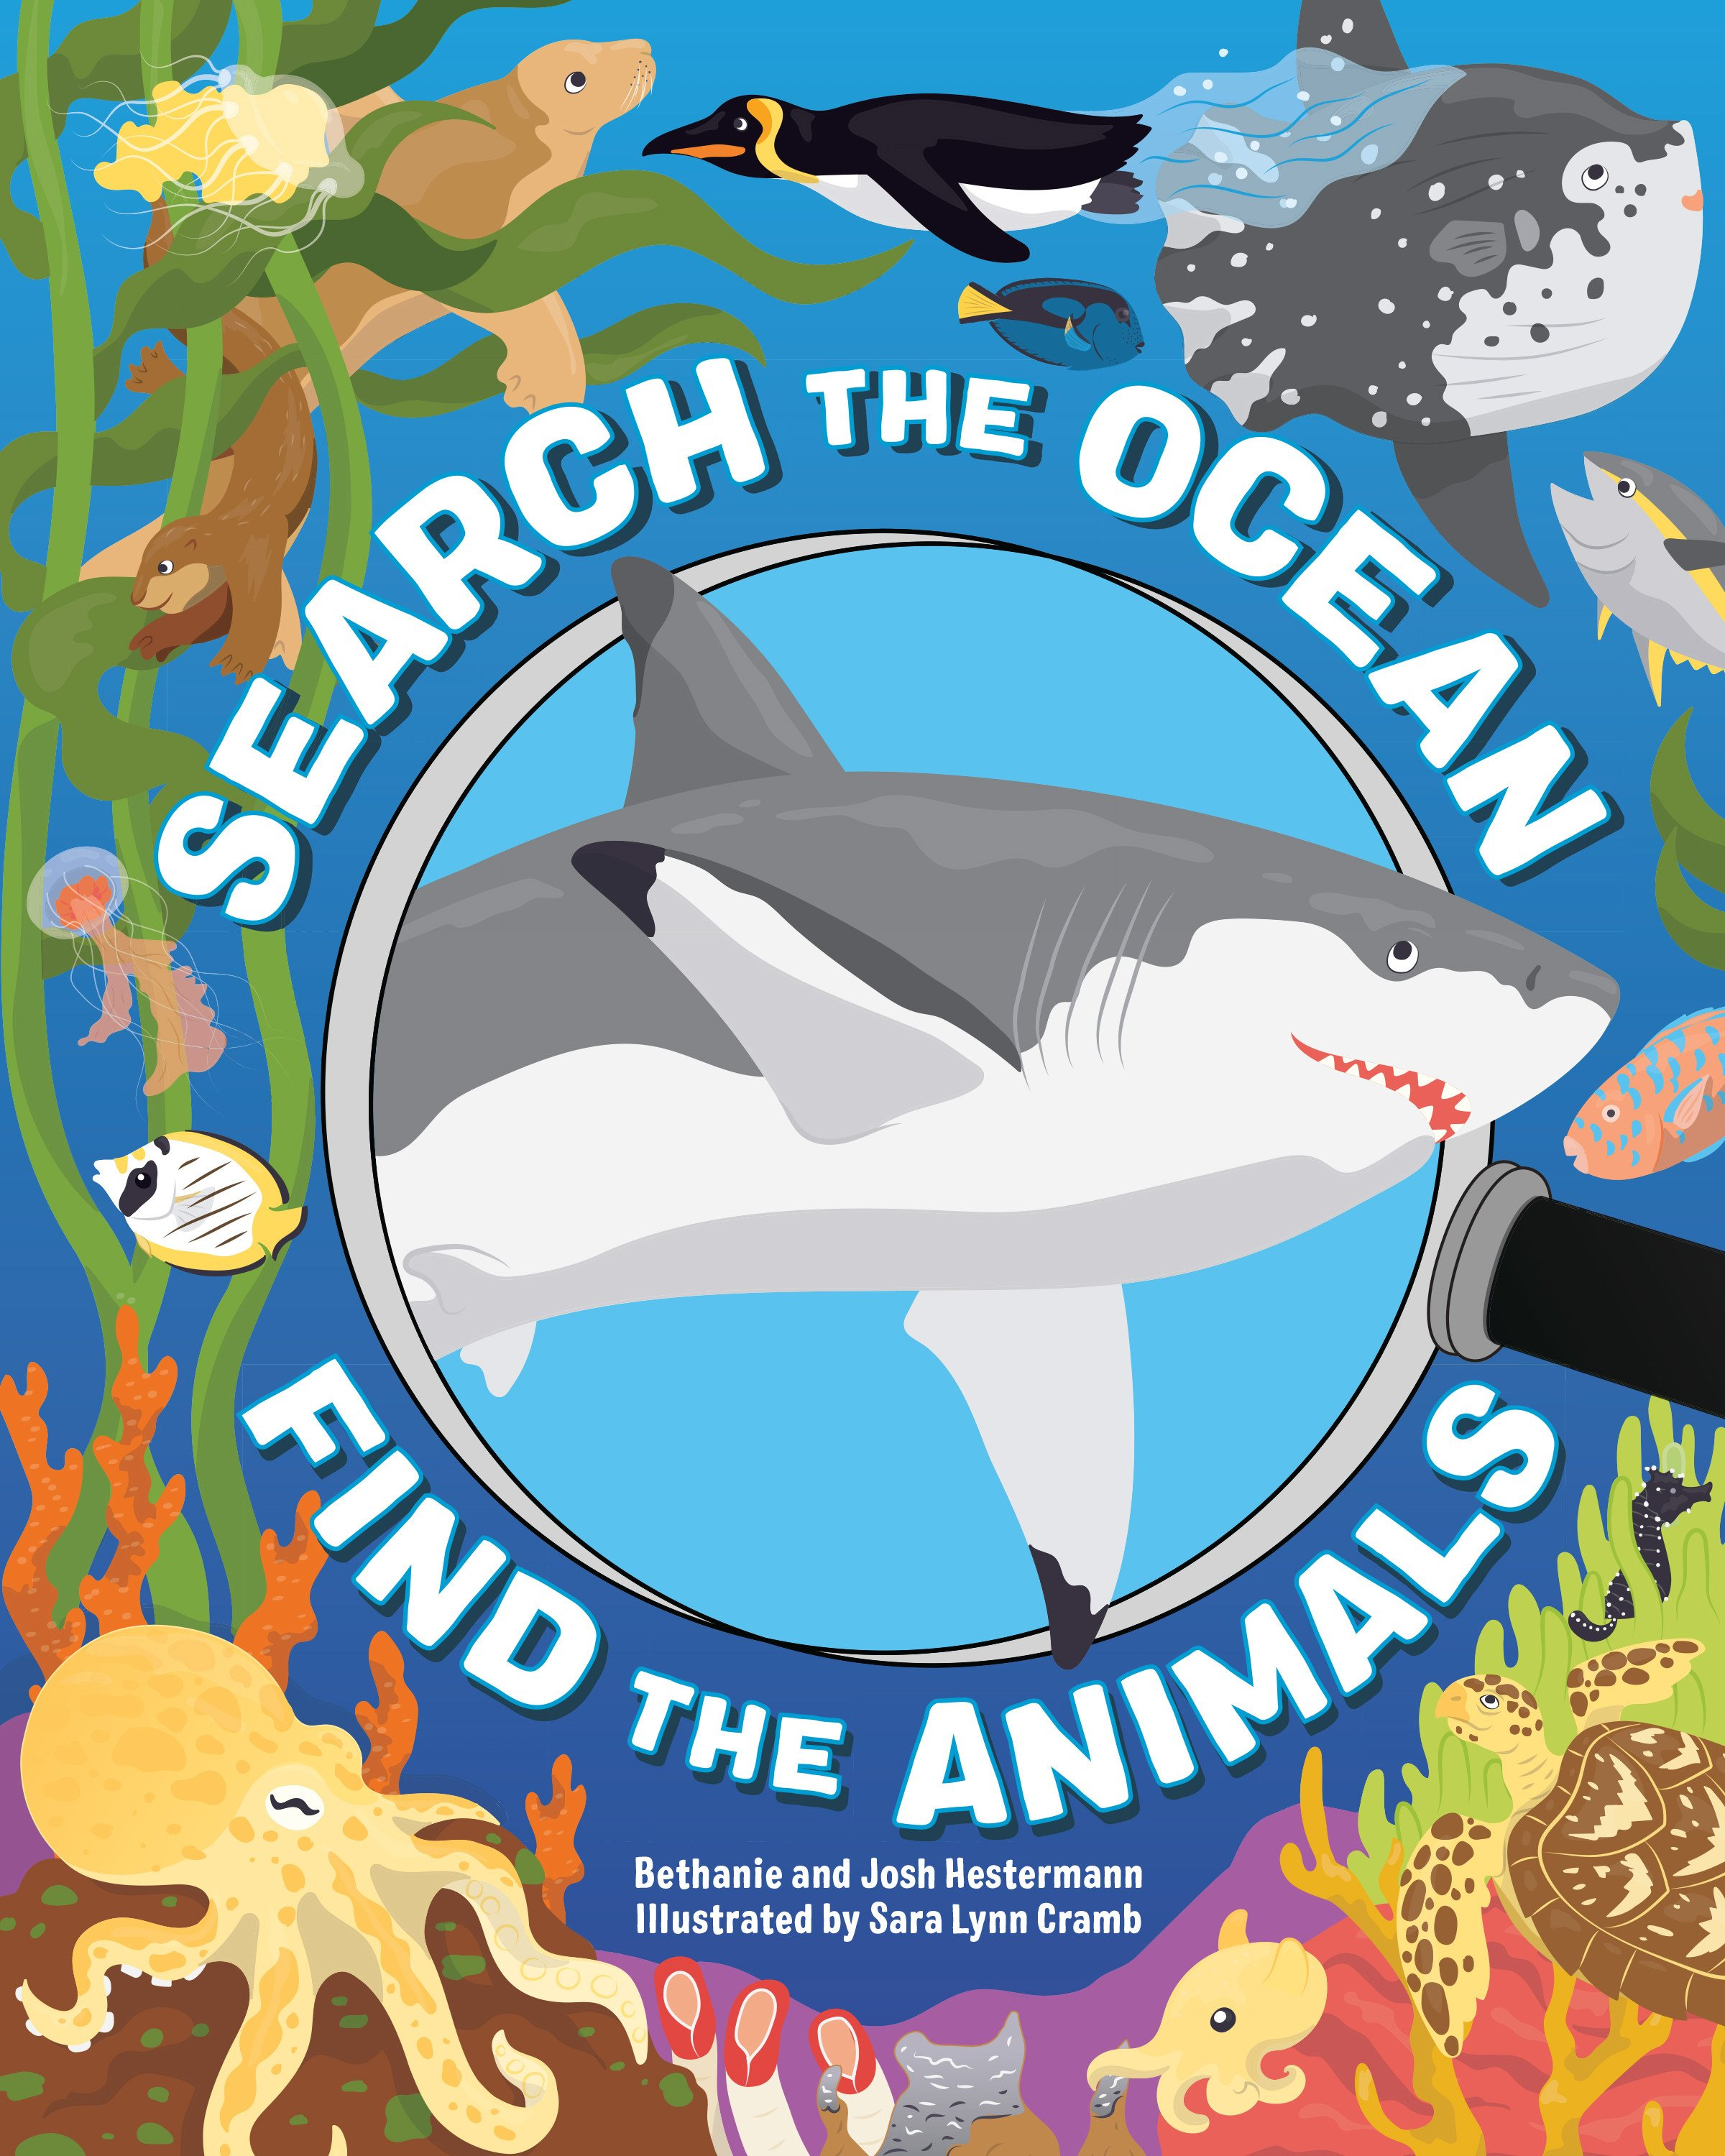 Search the Ocean: Find the Animals